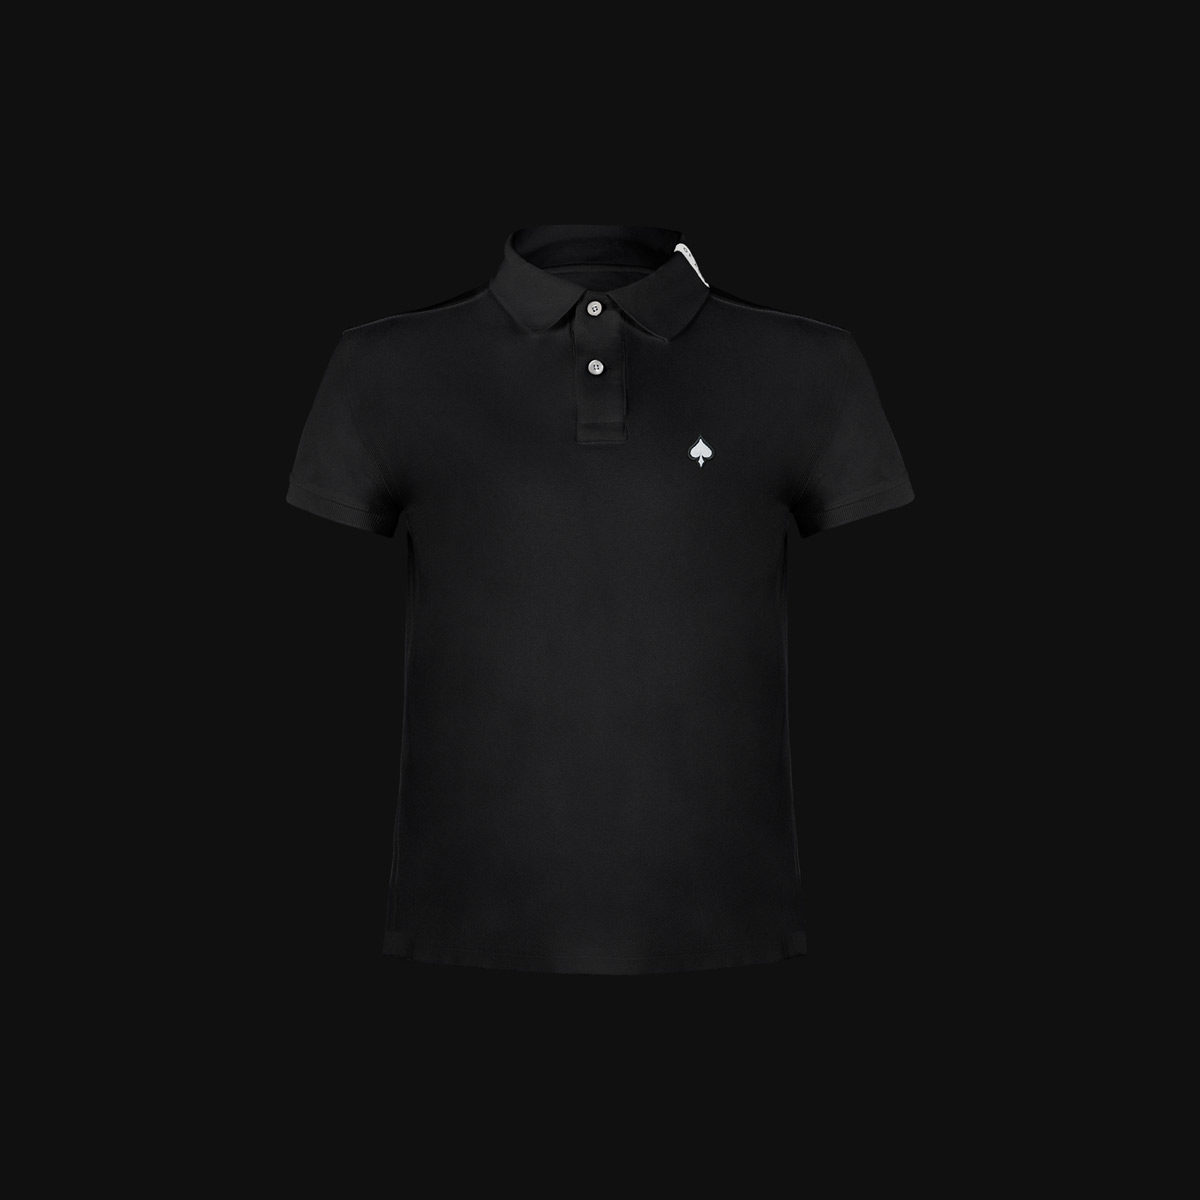 The Black Ace polo for man